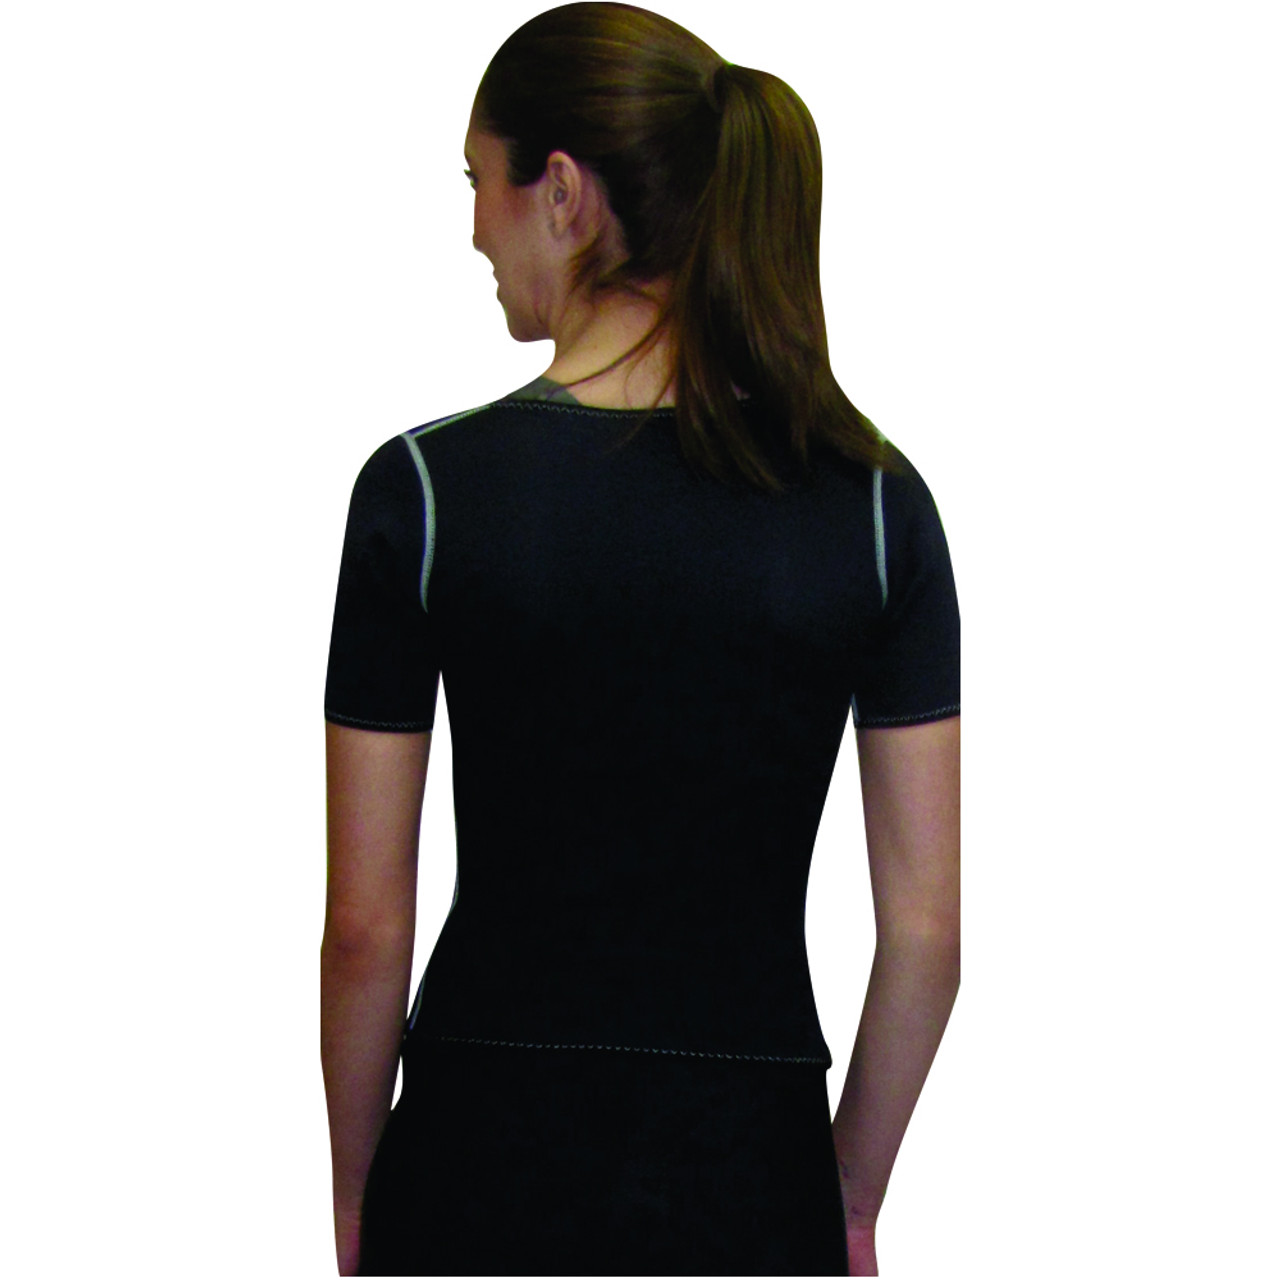 ddba55589 Neoprene Training Shirt with Sleeves  Neoprene Training Shirt with Sleeves